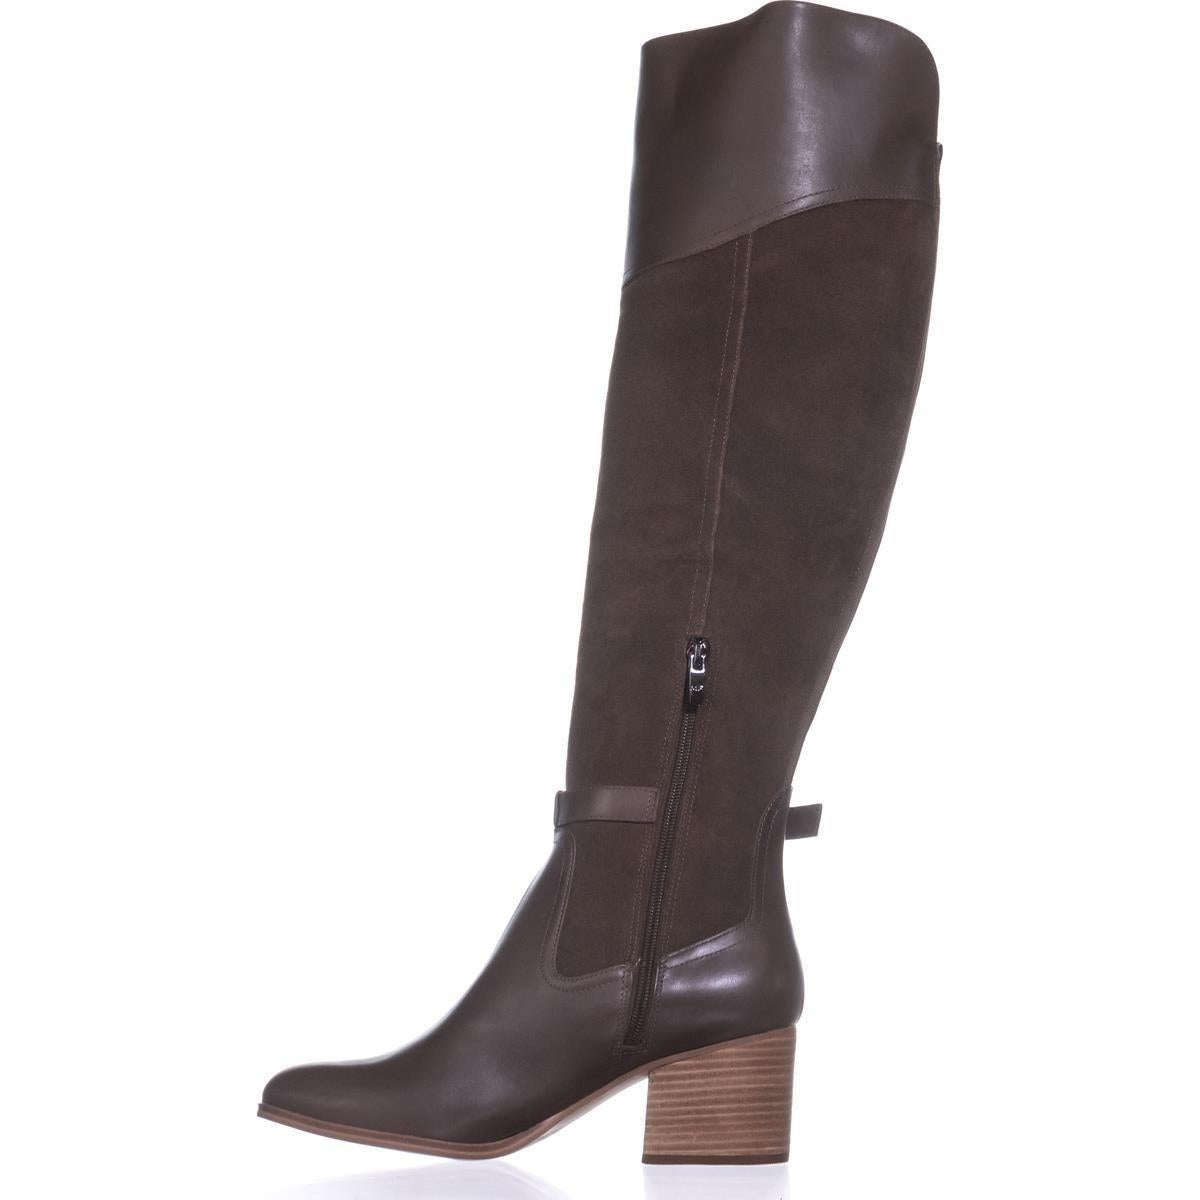 3a6ab4104d5 Buy MARC FISHER Women s Boots Online at Overstock